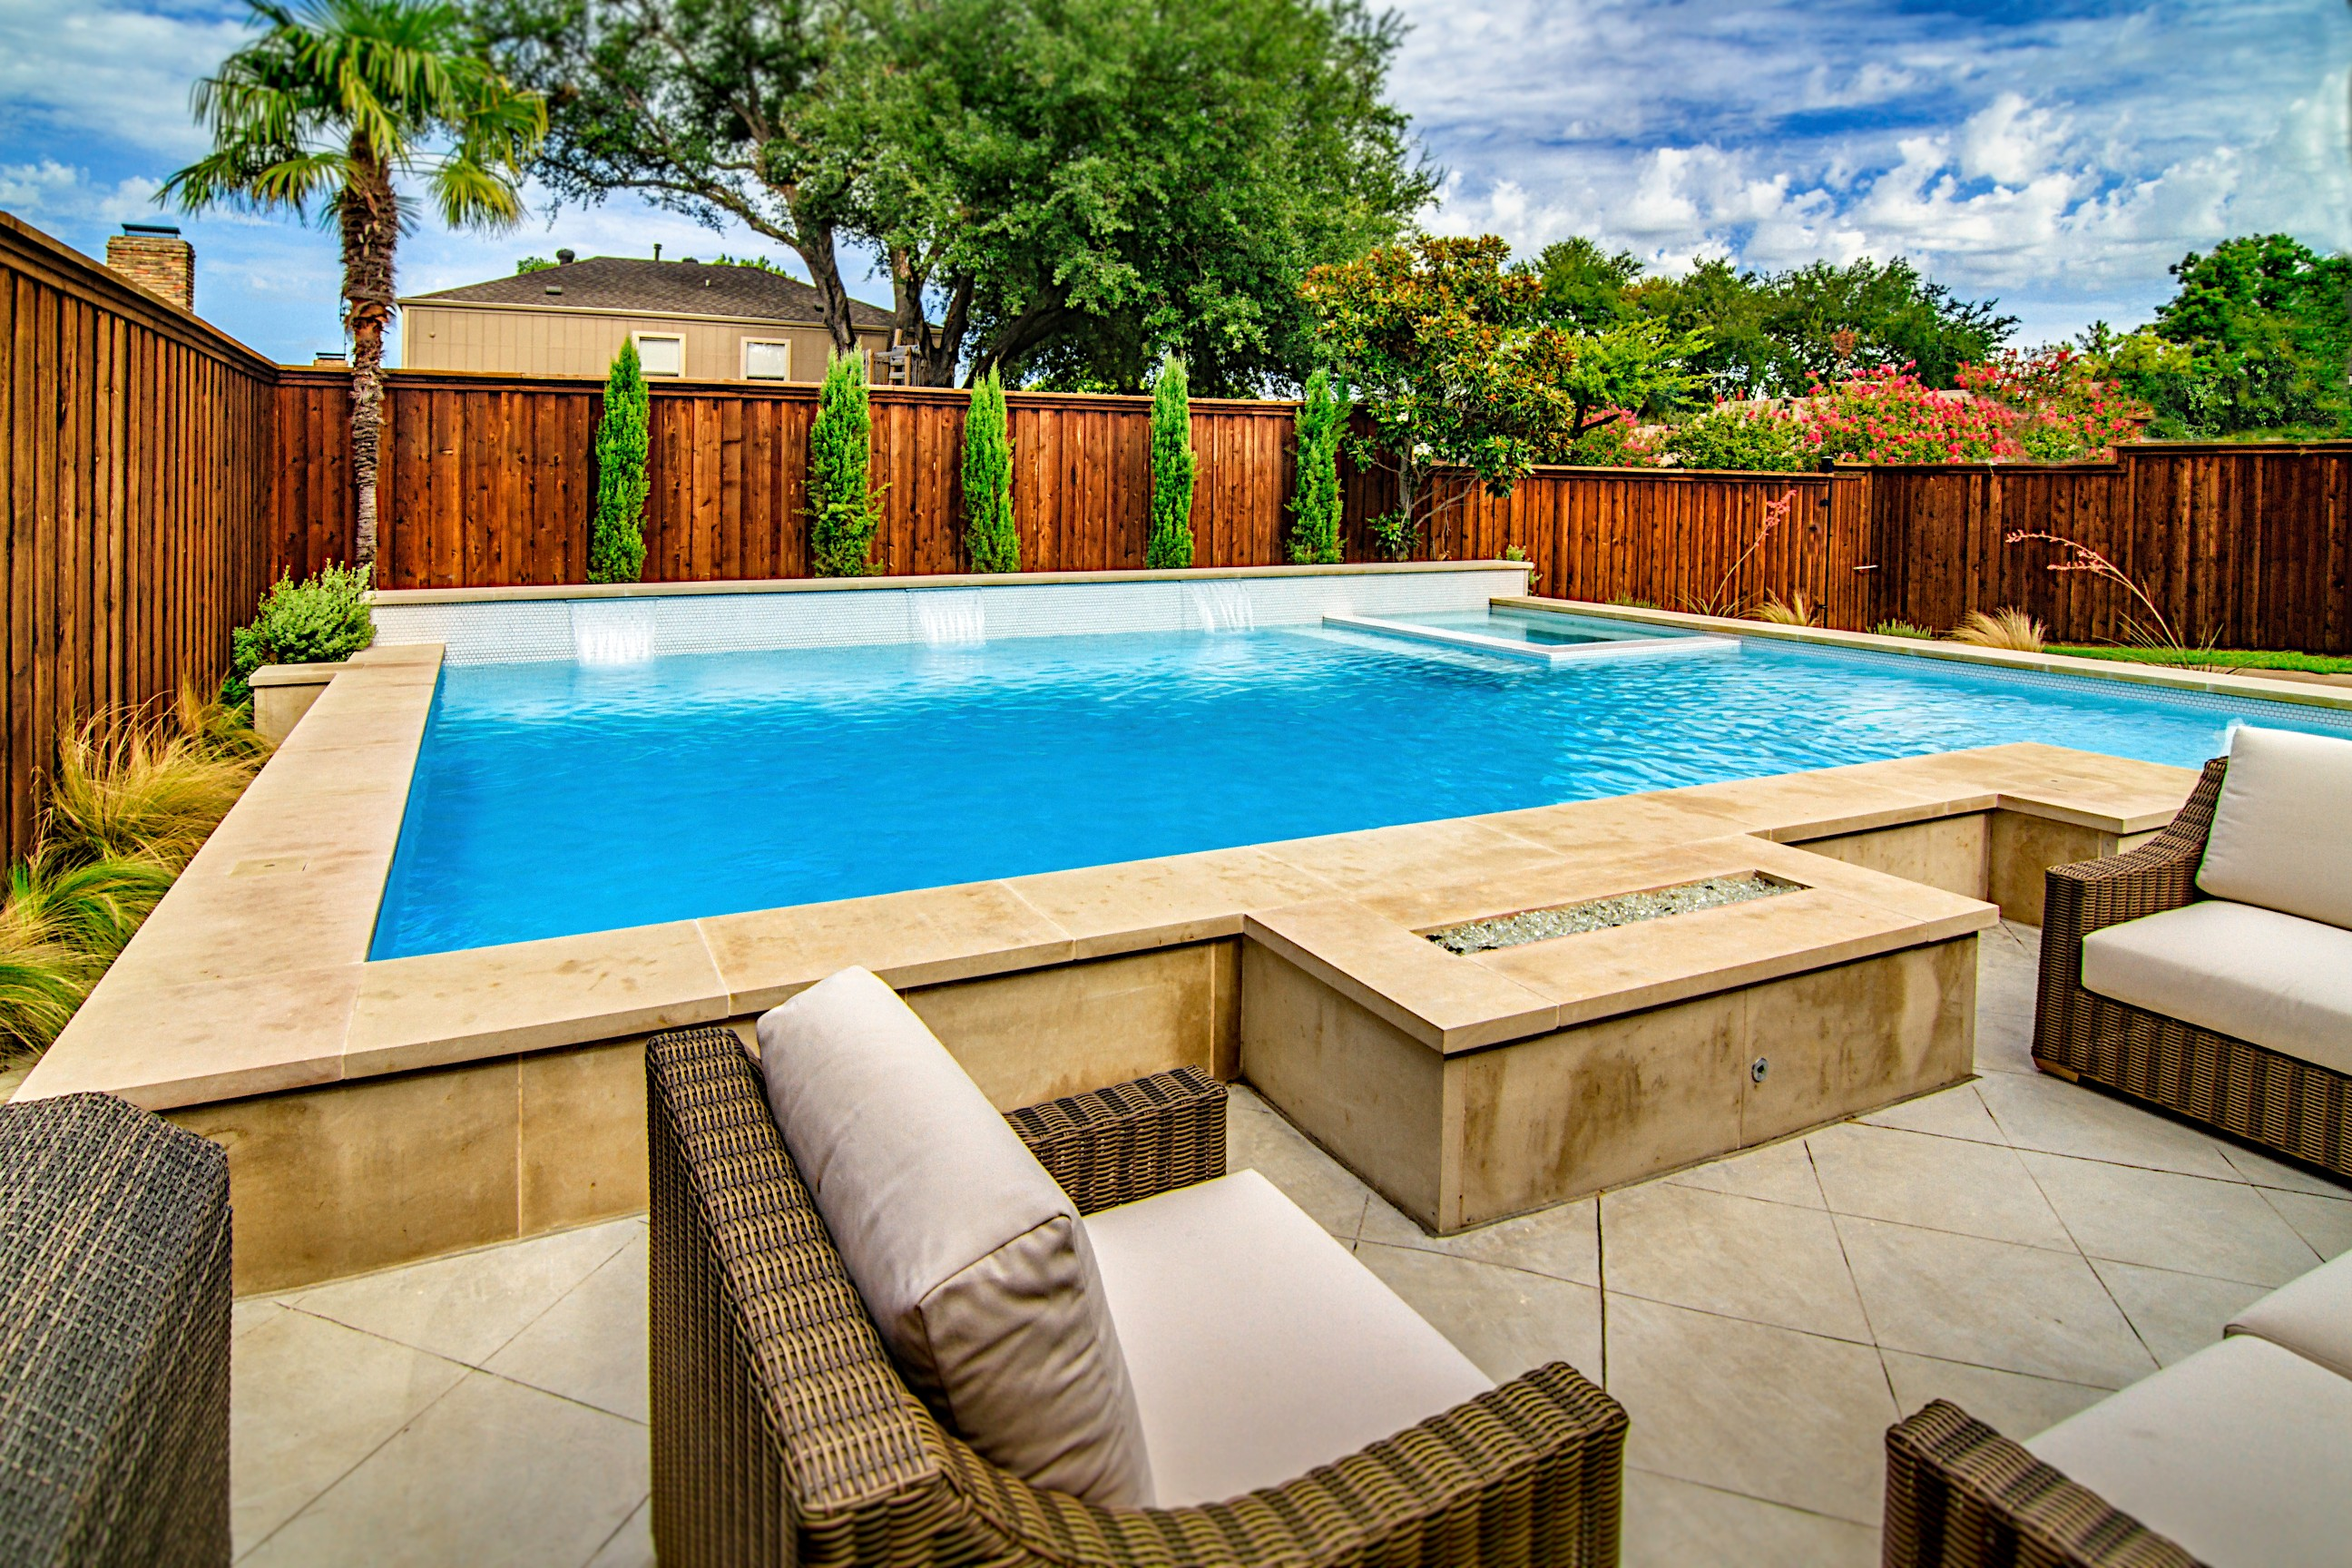 4 Things to Consider When Planning Your Pool Budget